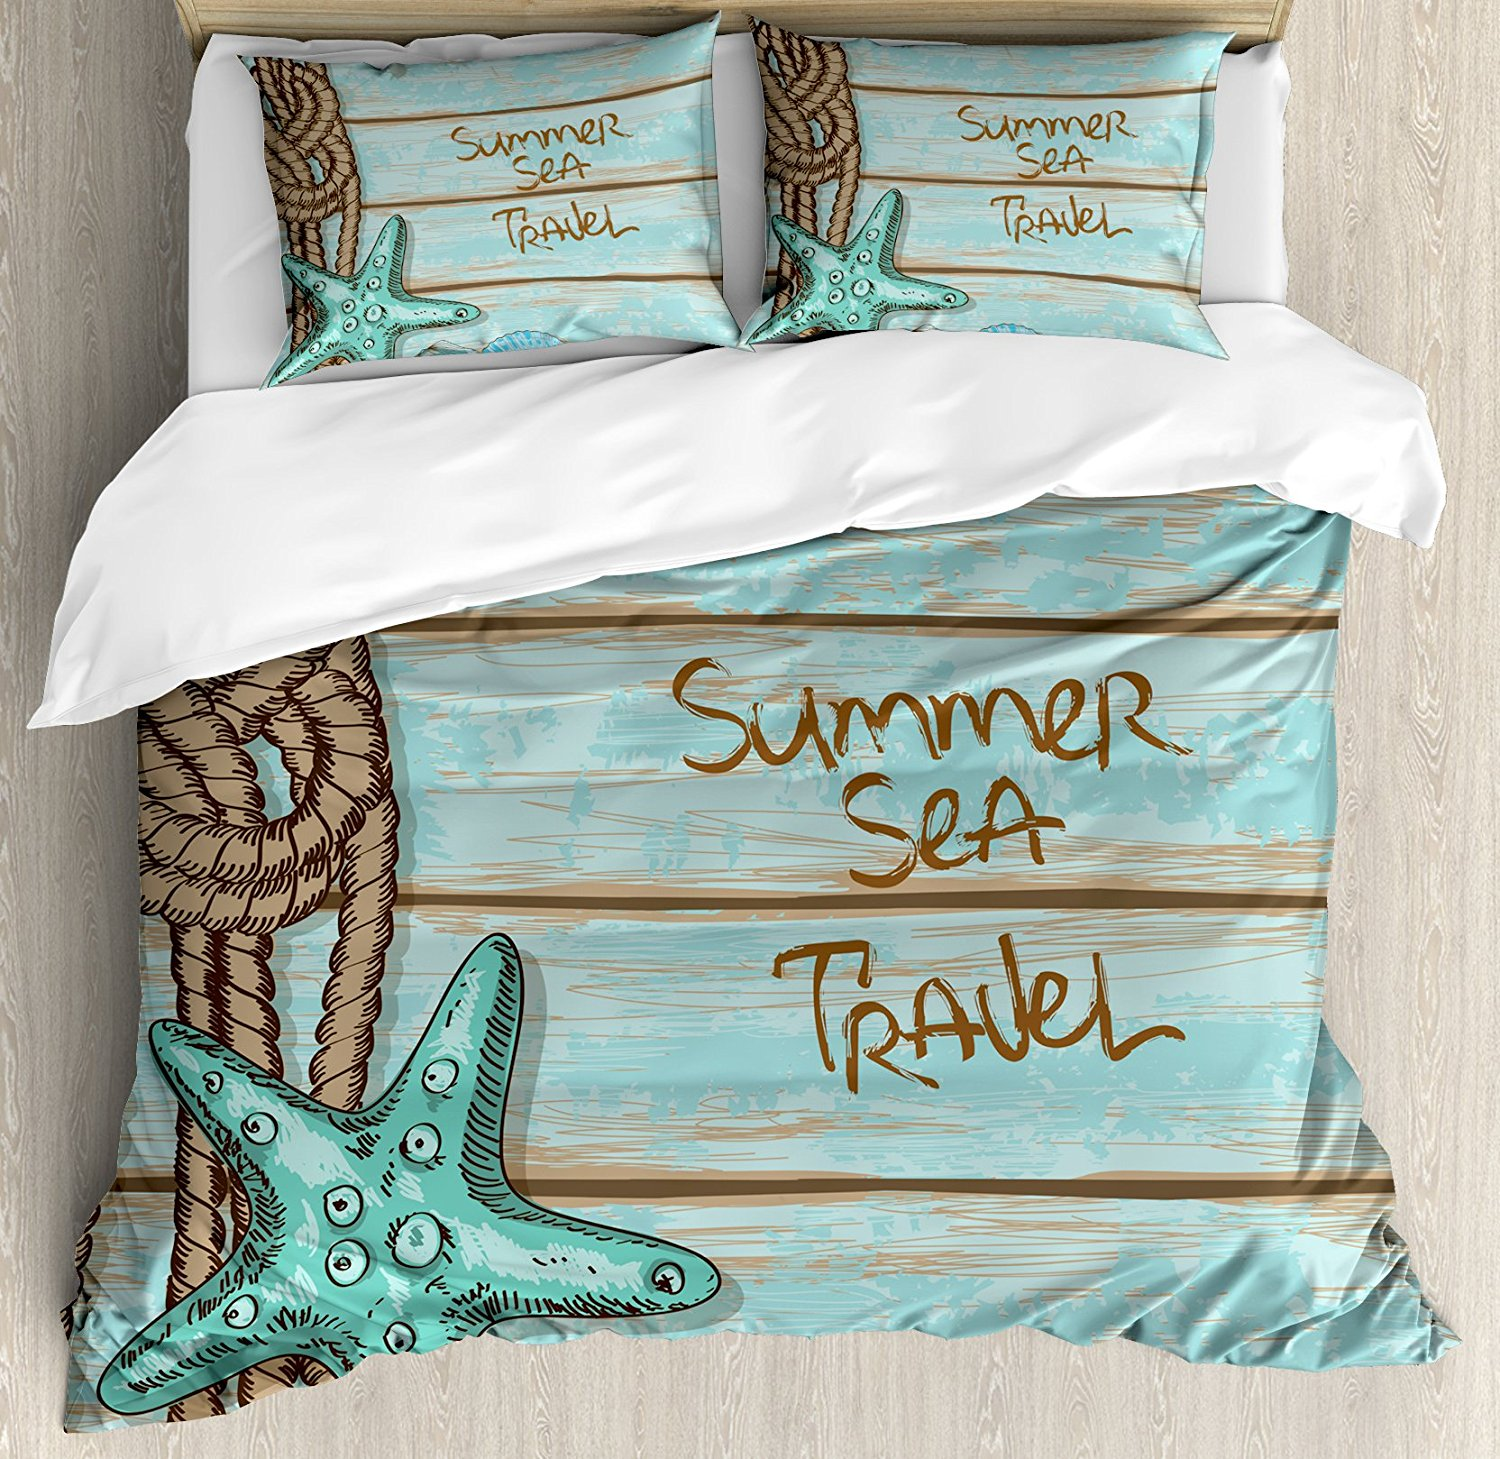 Starfish Decor Duvet Cover Set Summer Sea Travel Retro Boards of Ship Deck Rope Scallops Bedding Set Brown Mint Green Turquoise